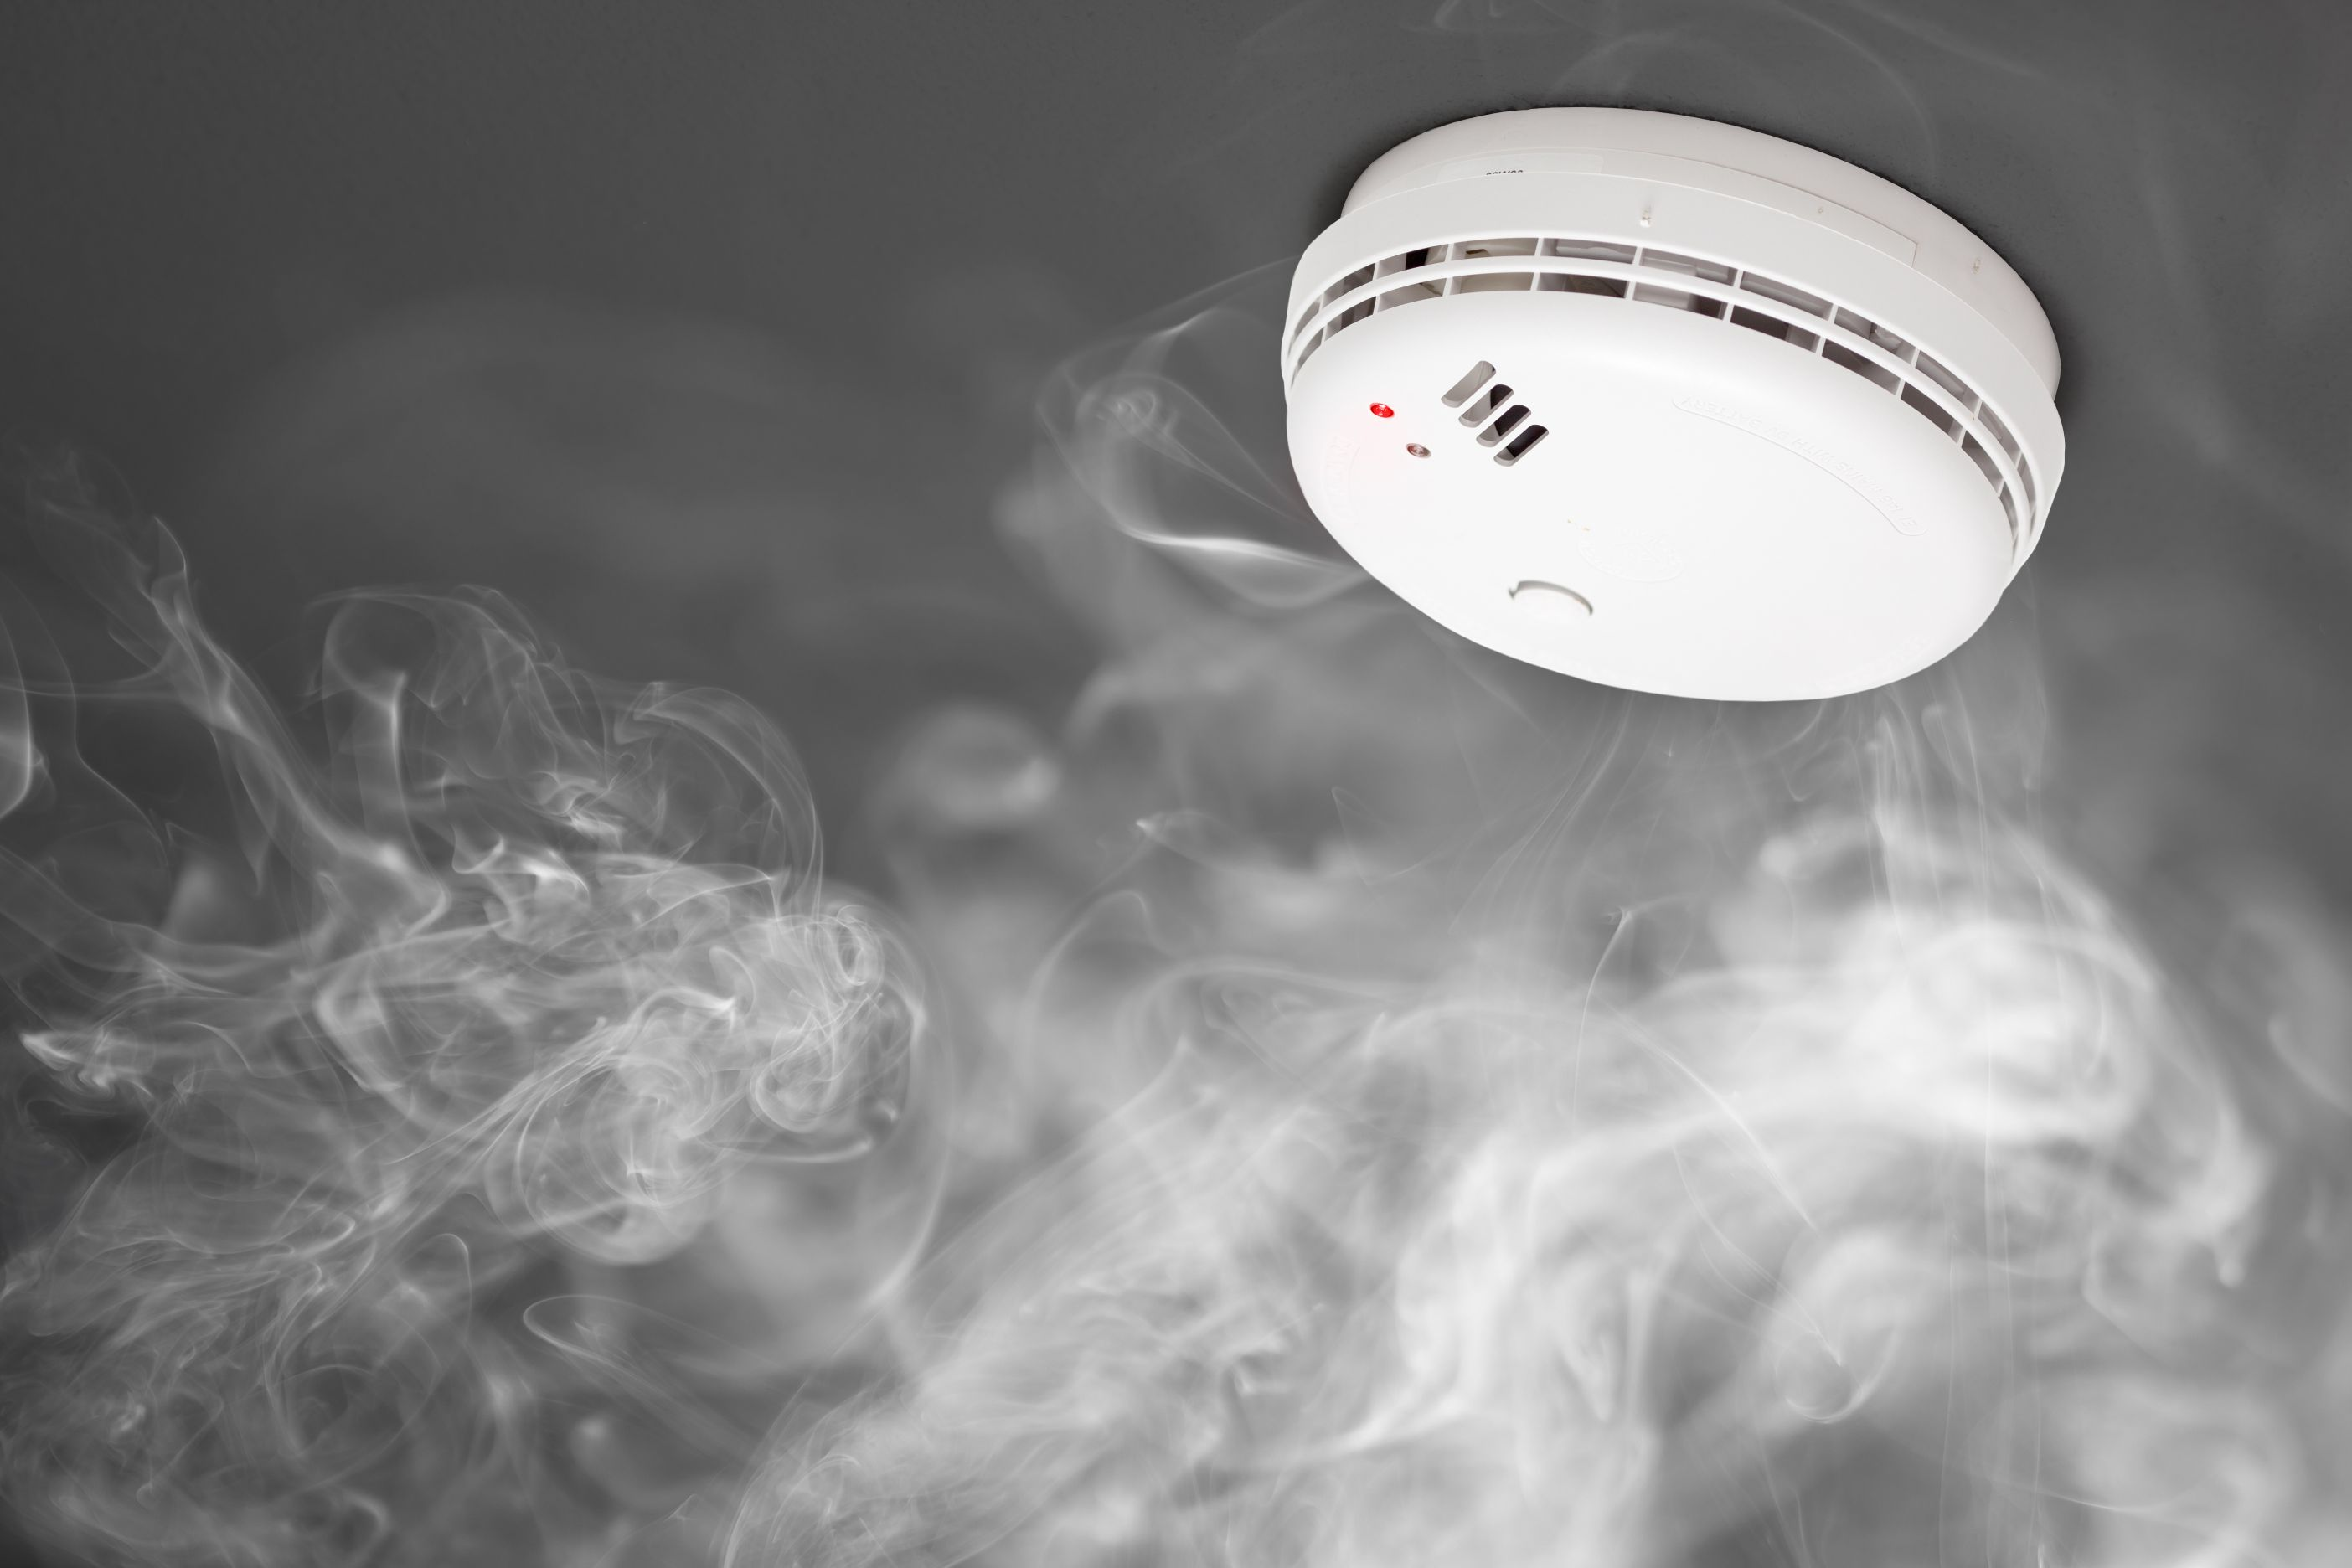 Smoke Detectors & Alarms